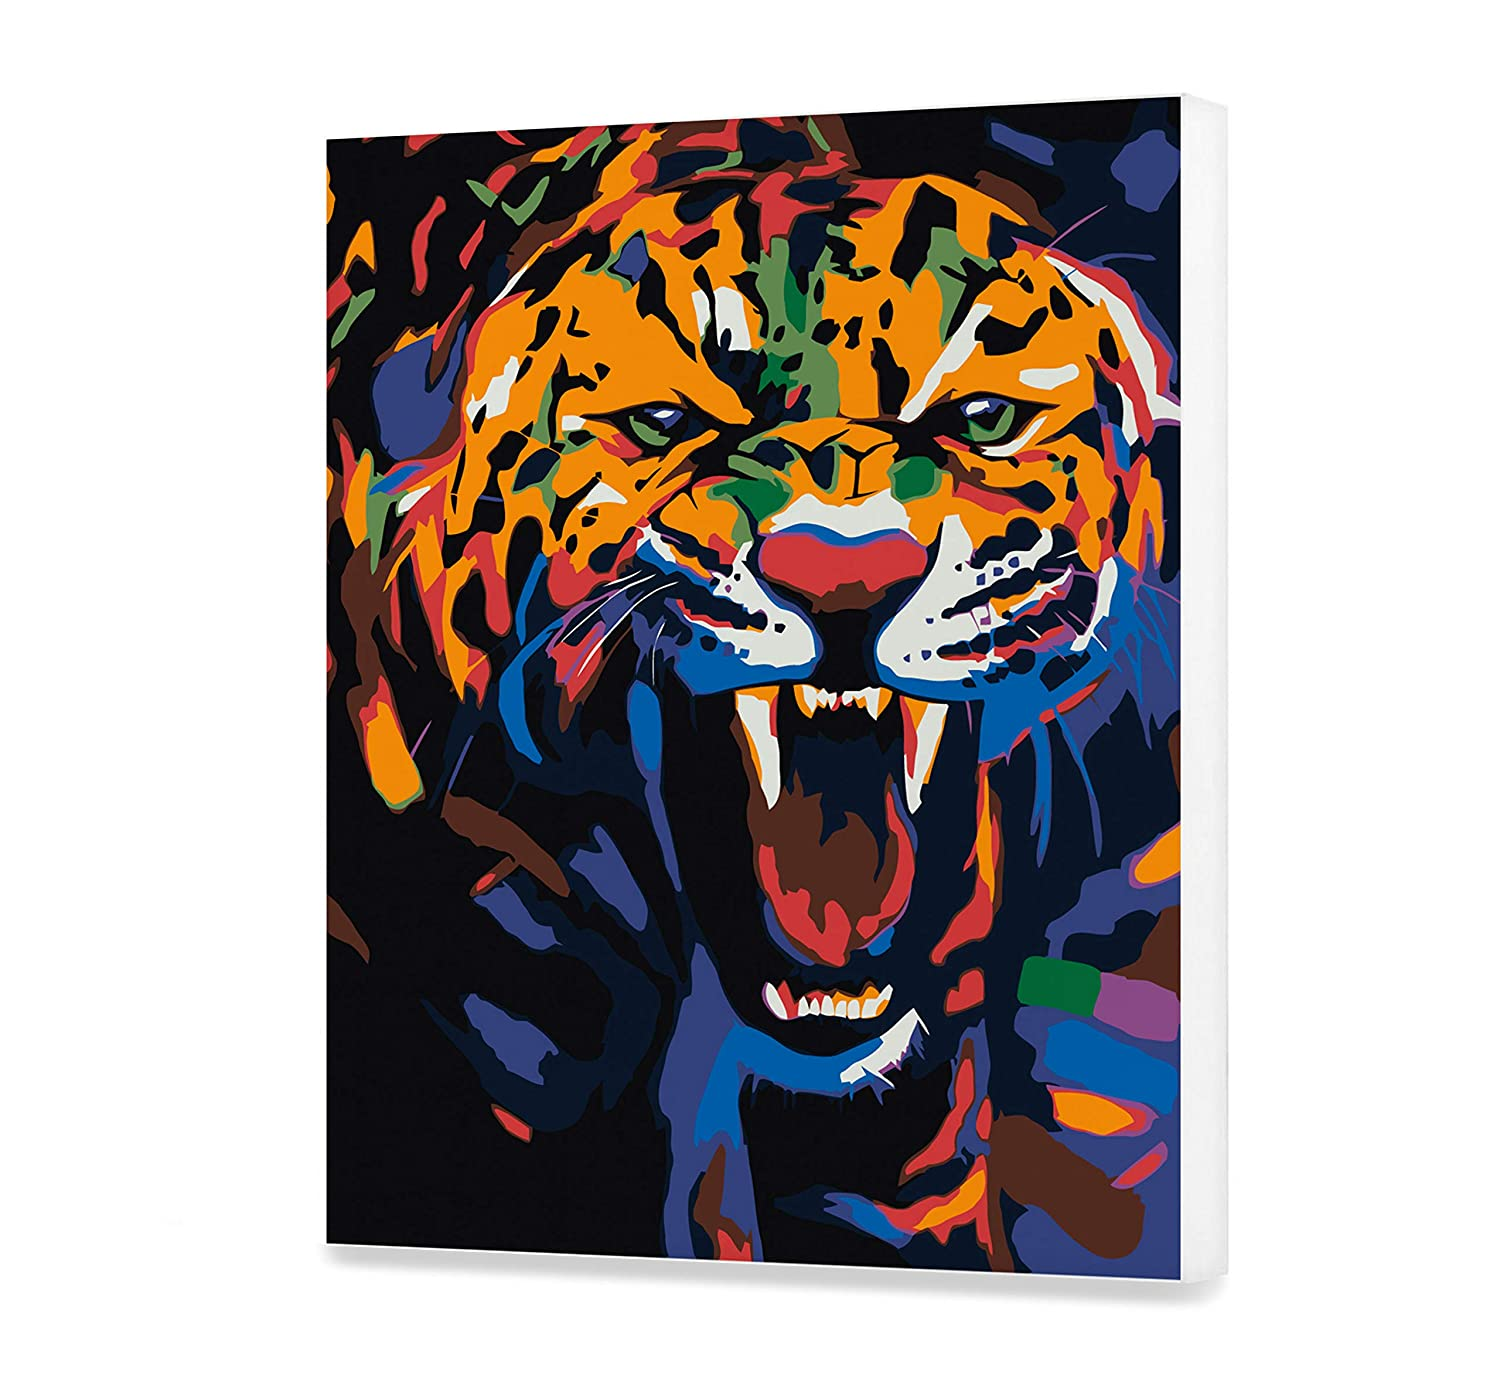 Jaguar Painting By Numbers DIY Kit Animal Paint By Number Art Design Canvas Colorful Painting By Numbers Ellie Benton Painting Kit Home Sittting Hobby